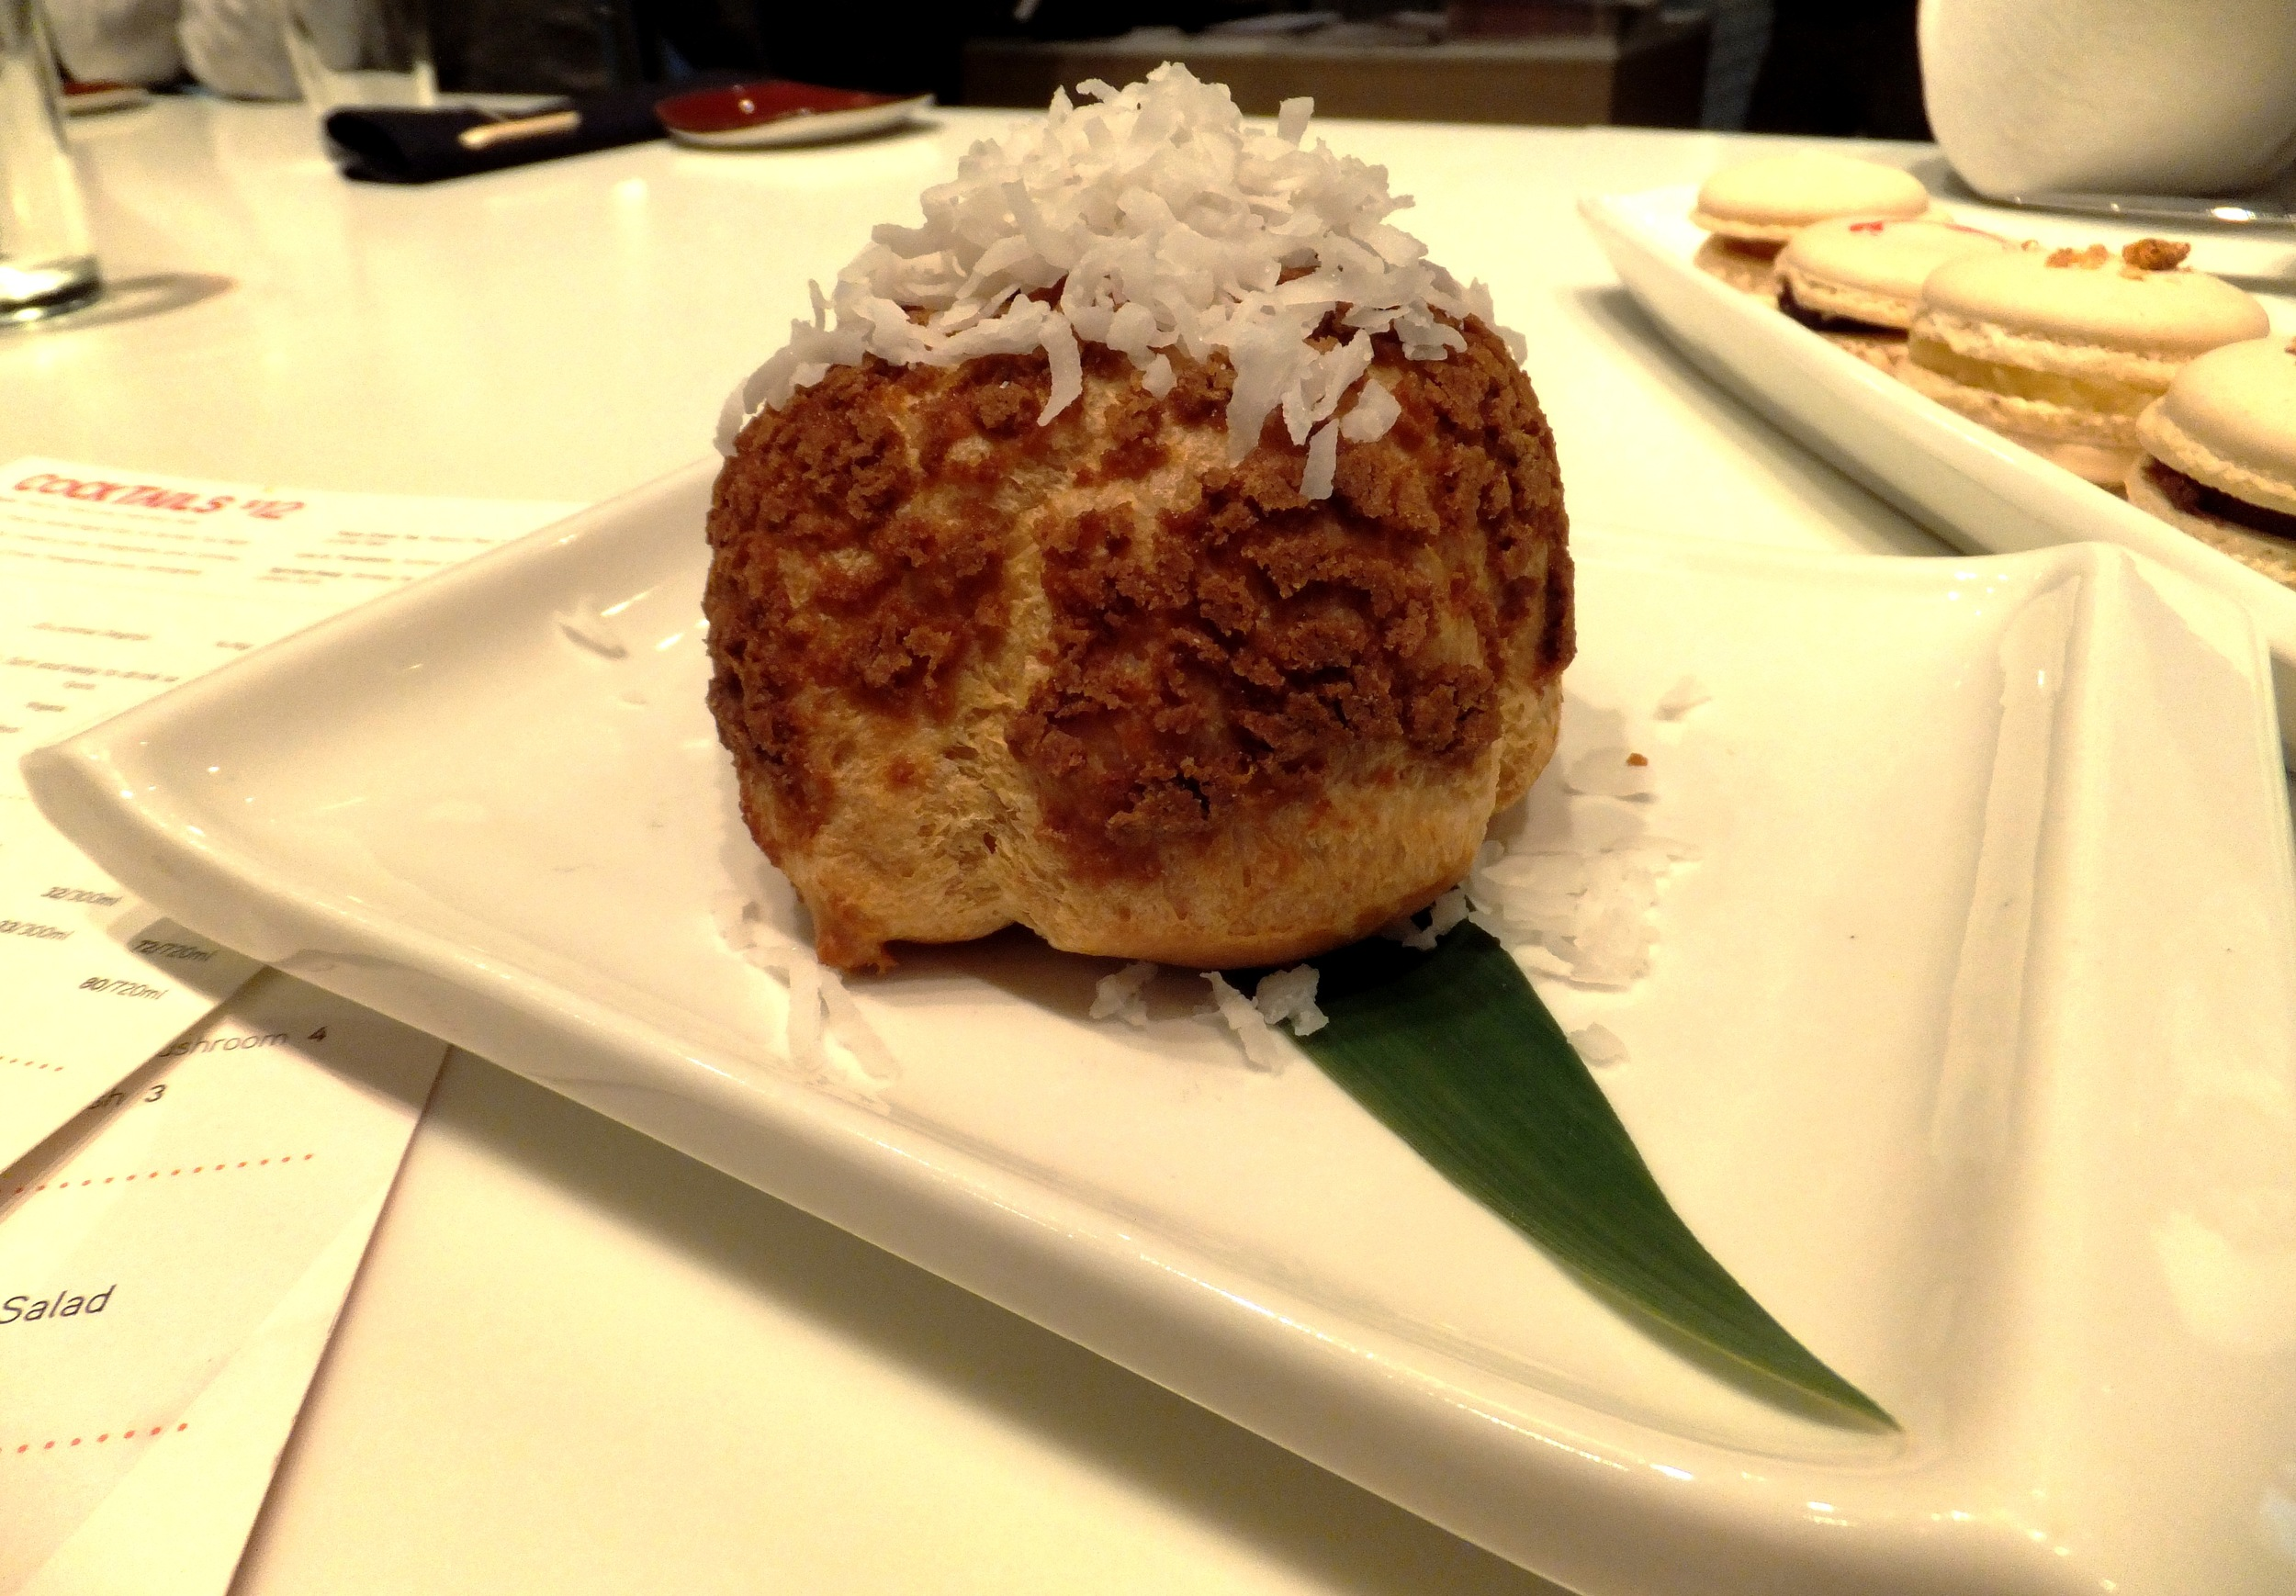 Figure 10. Coconut cream puff